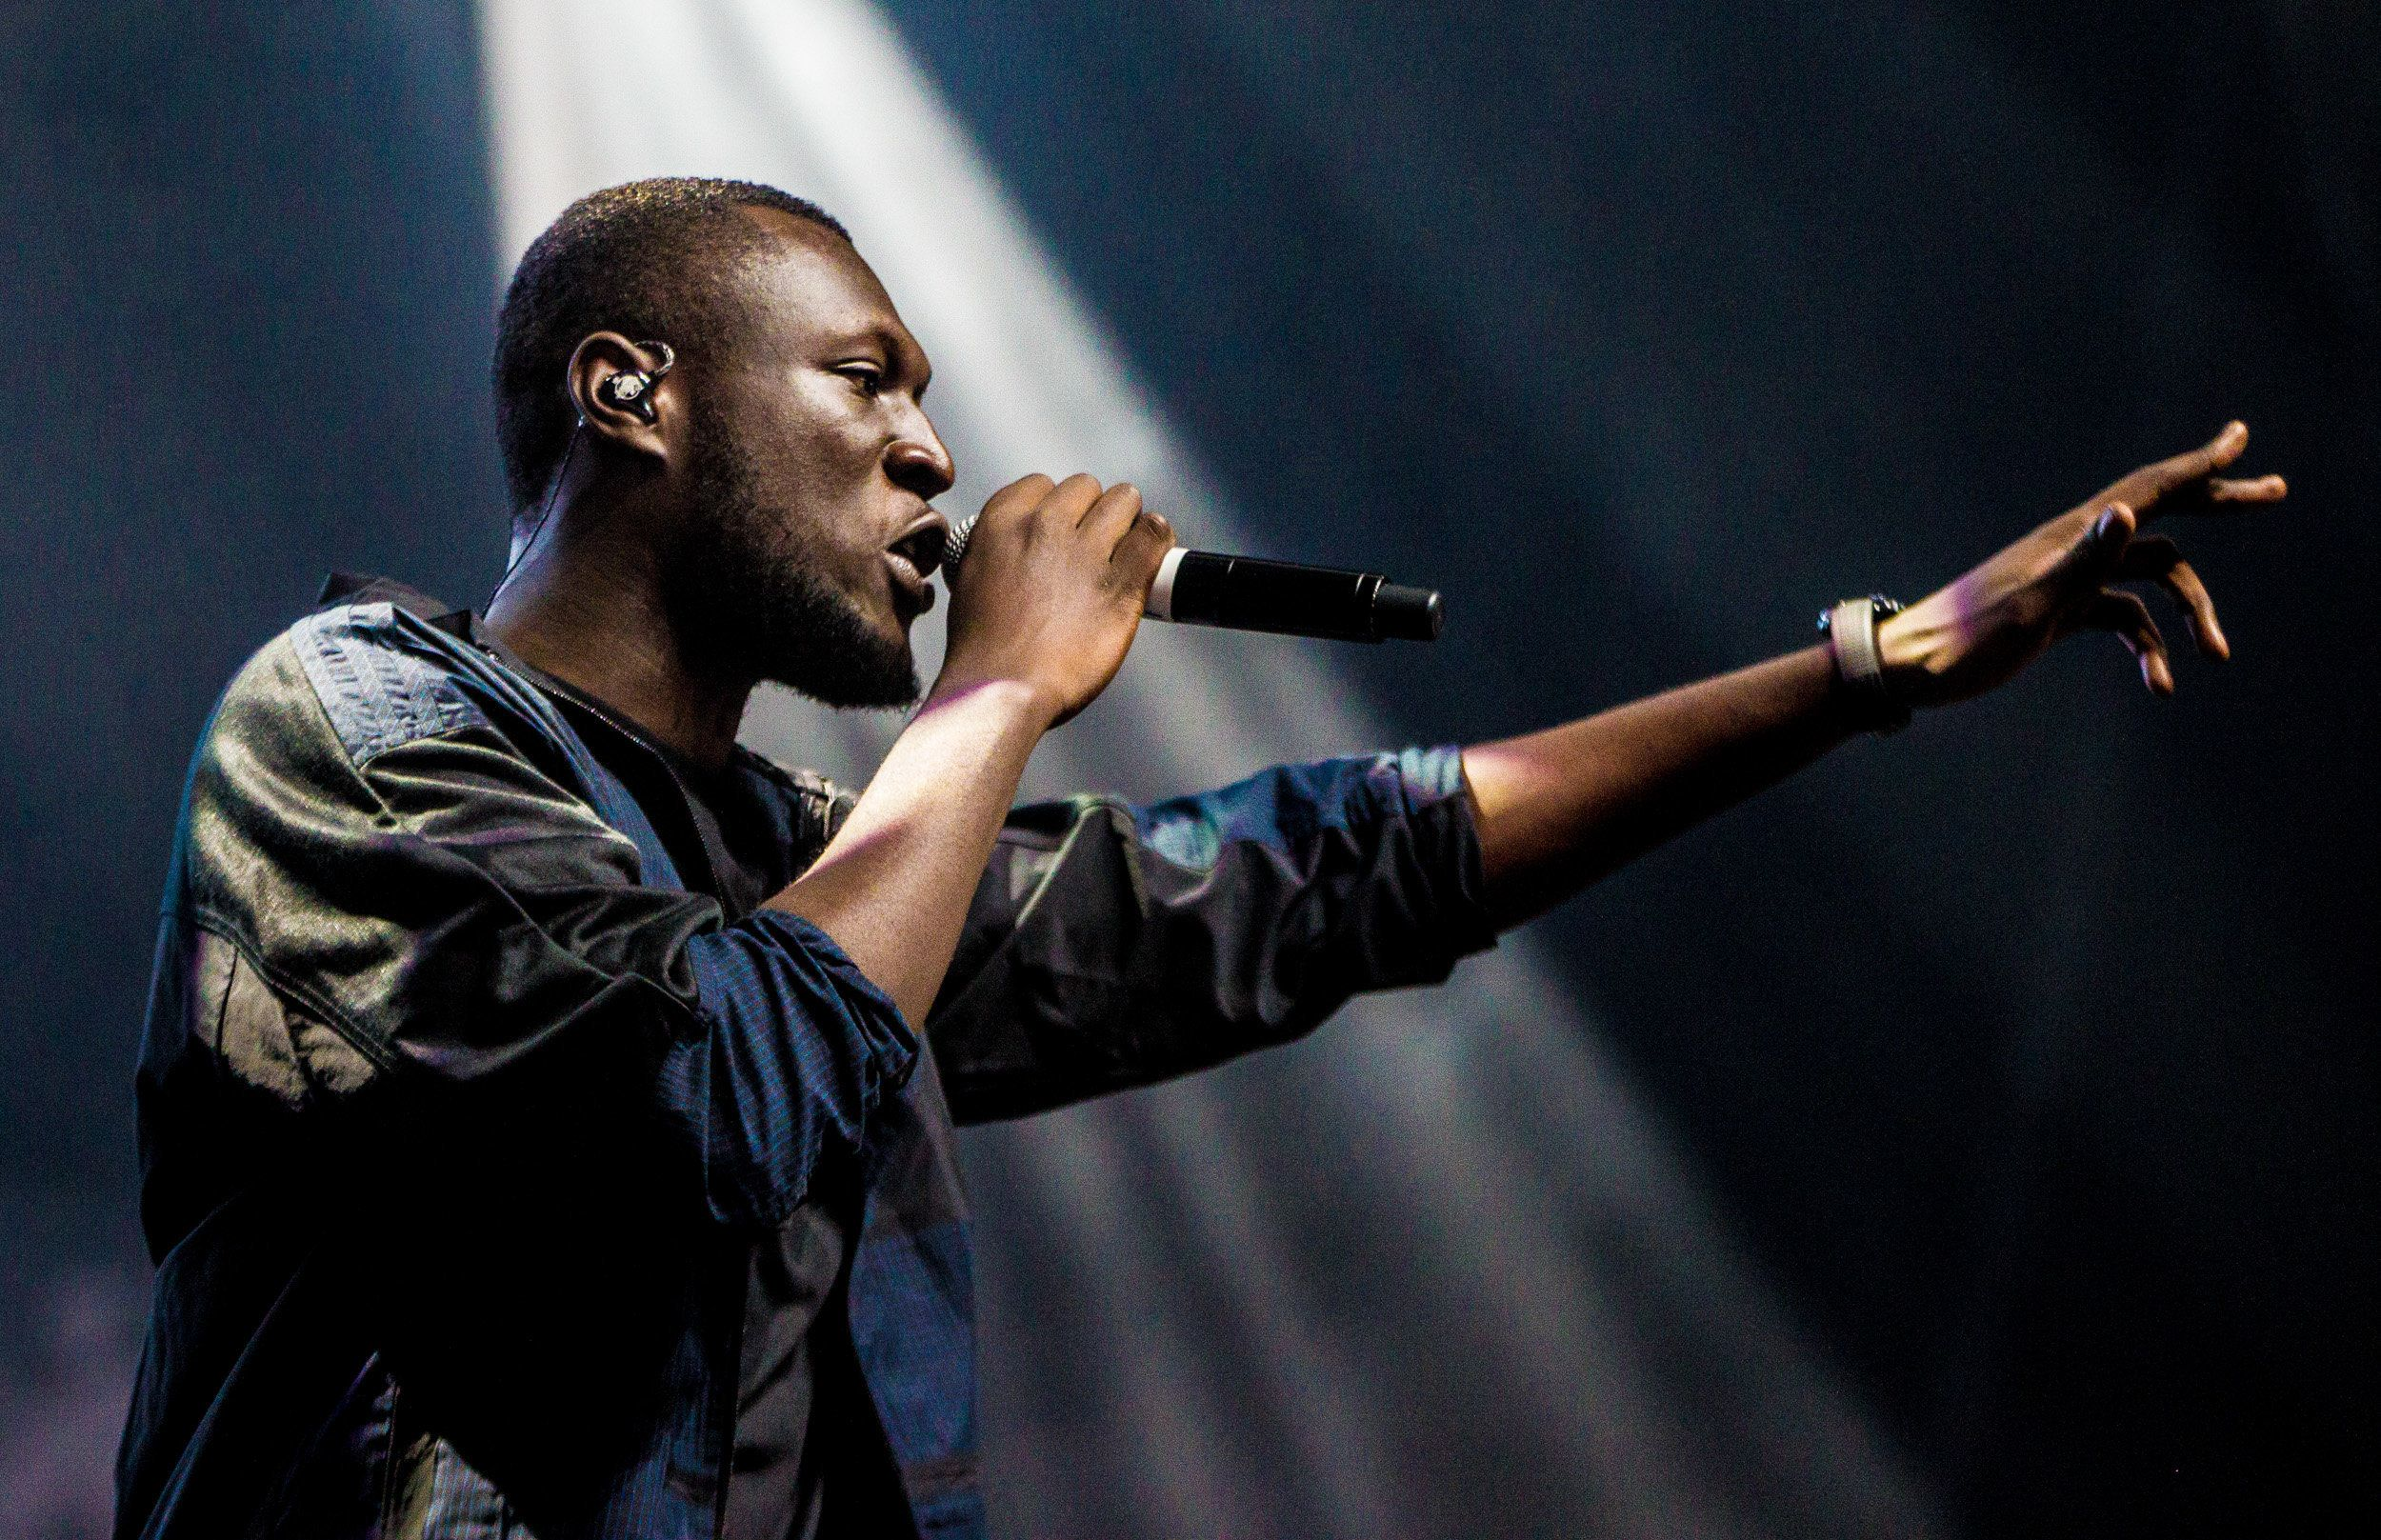 Oxford snubbed Stormzy's black scholarships